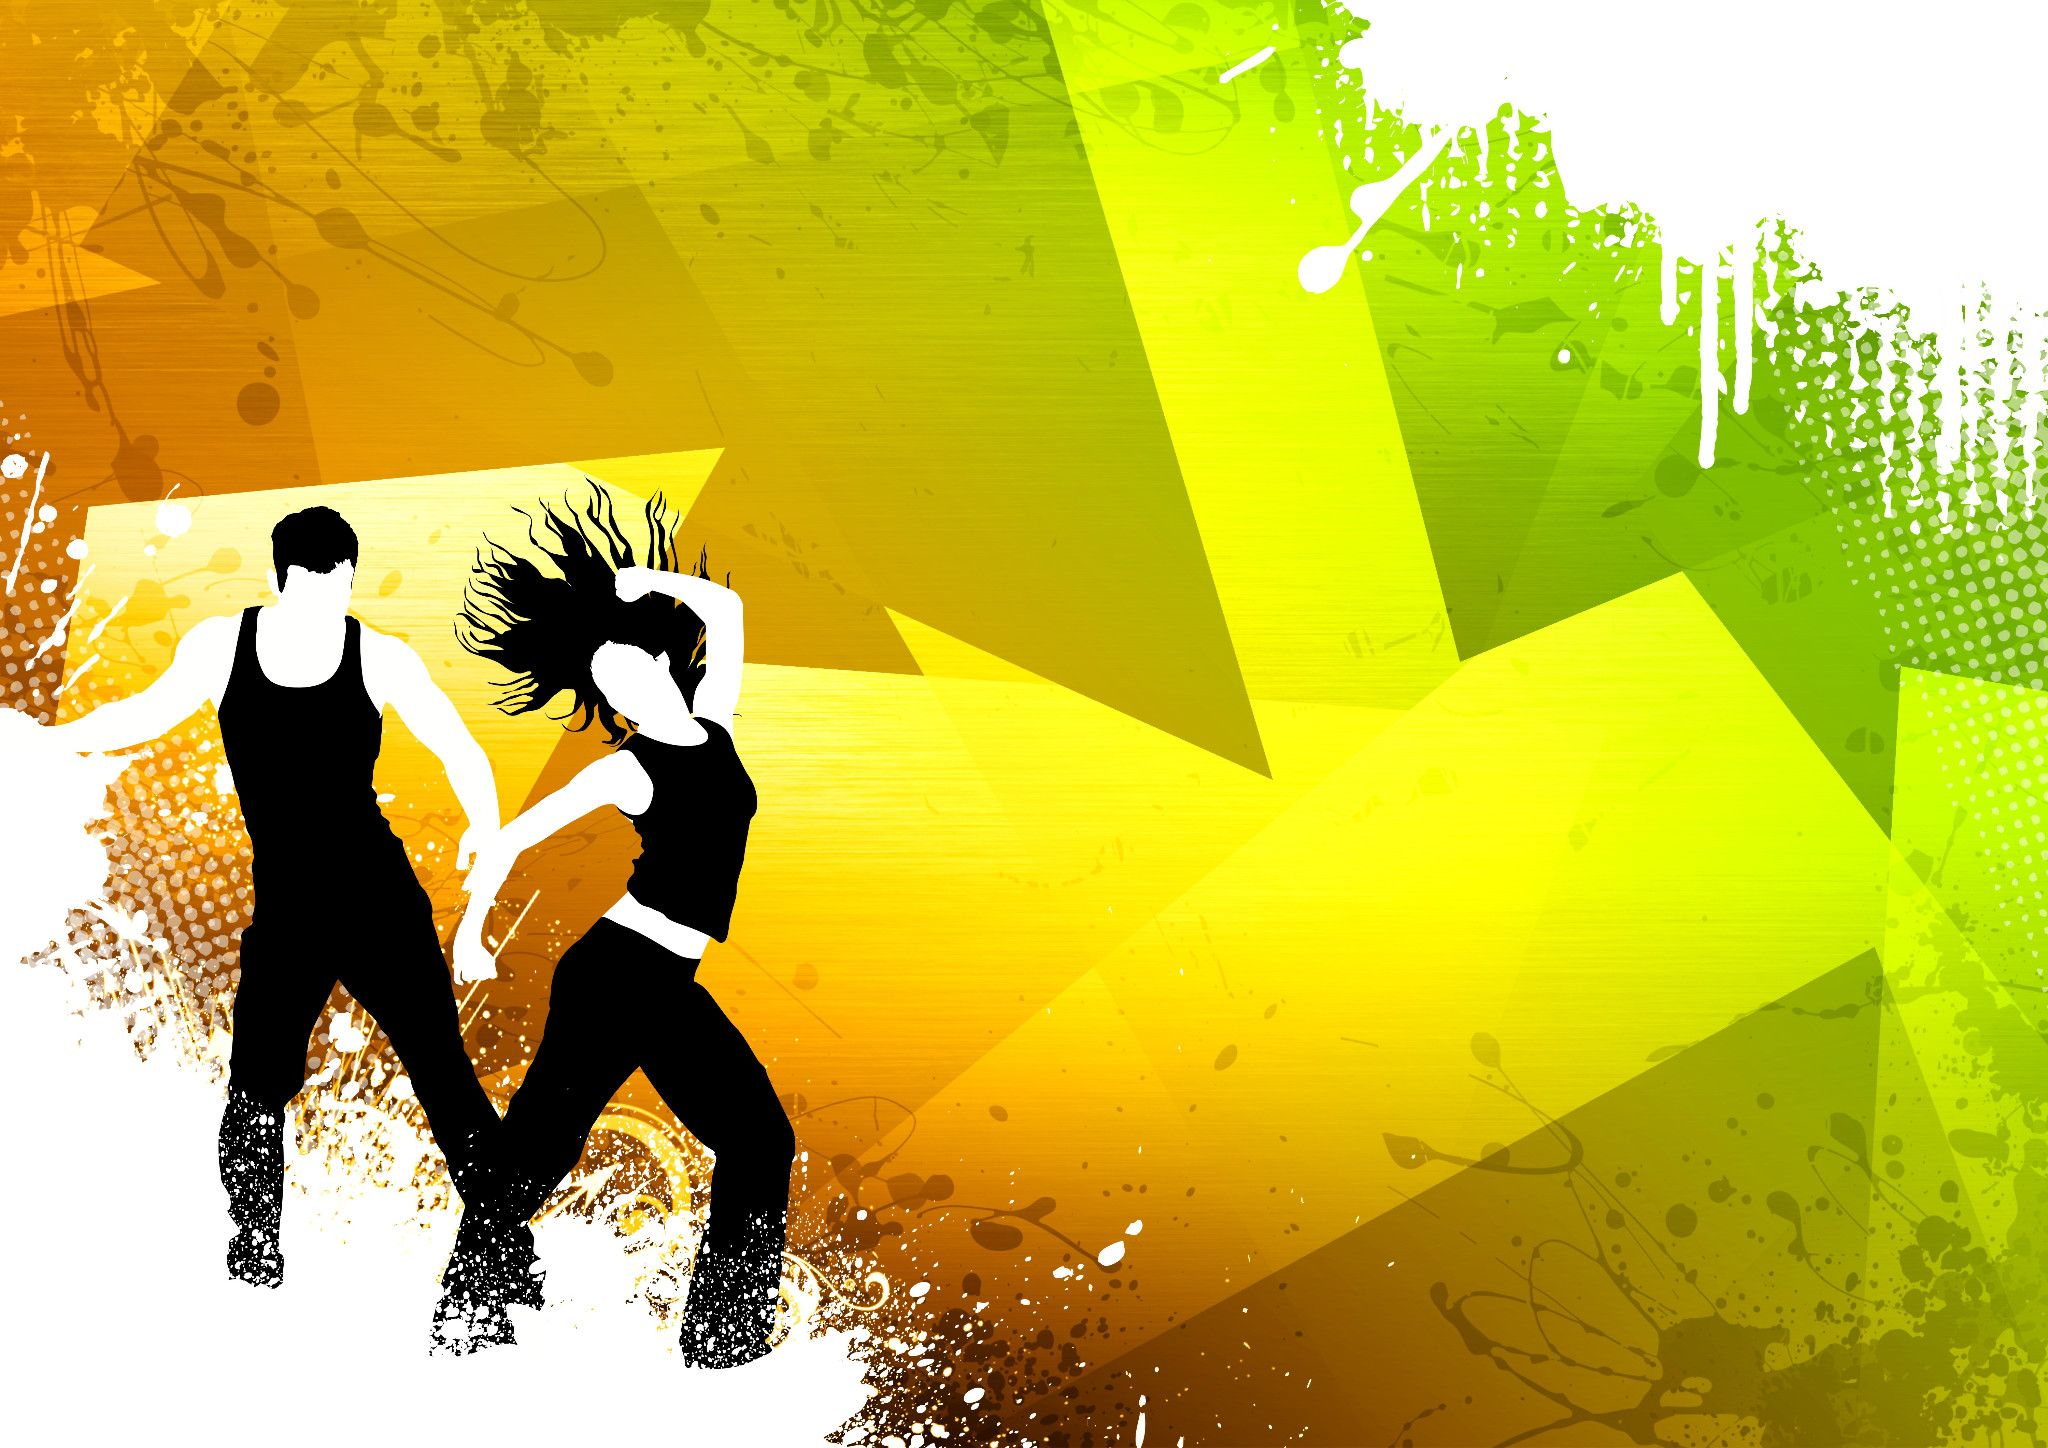 Zumba flyer design zumba flyers -  An Online Website Builder That Lets You Create Delicious Bite Size Websites That Are Easy To Make And Impossible To Mess Up Beautiful Flyers Instantly